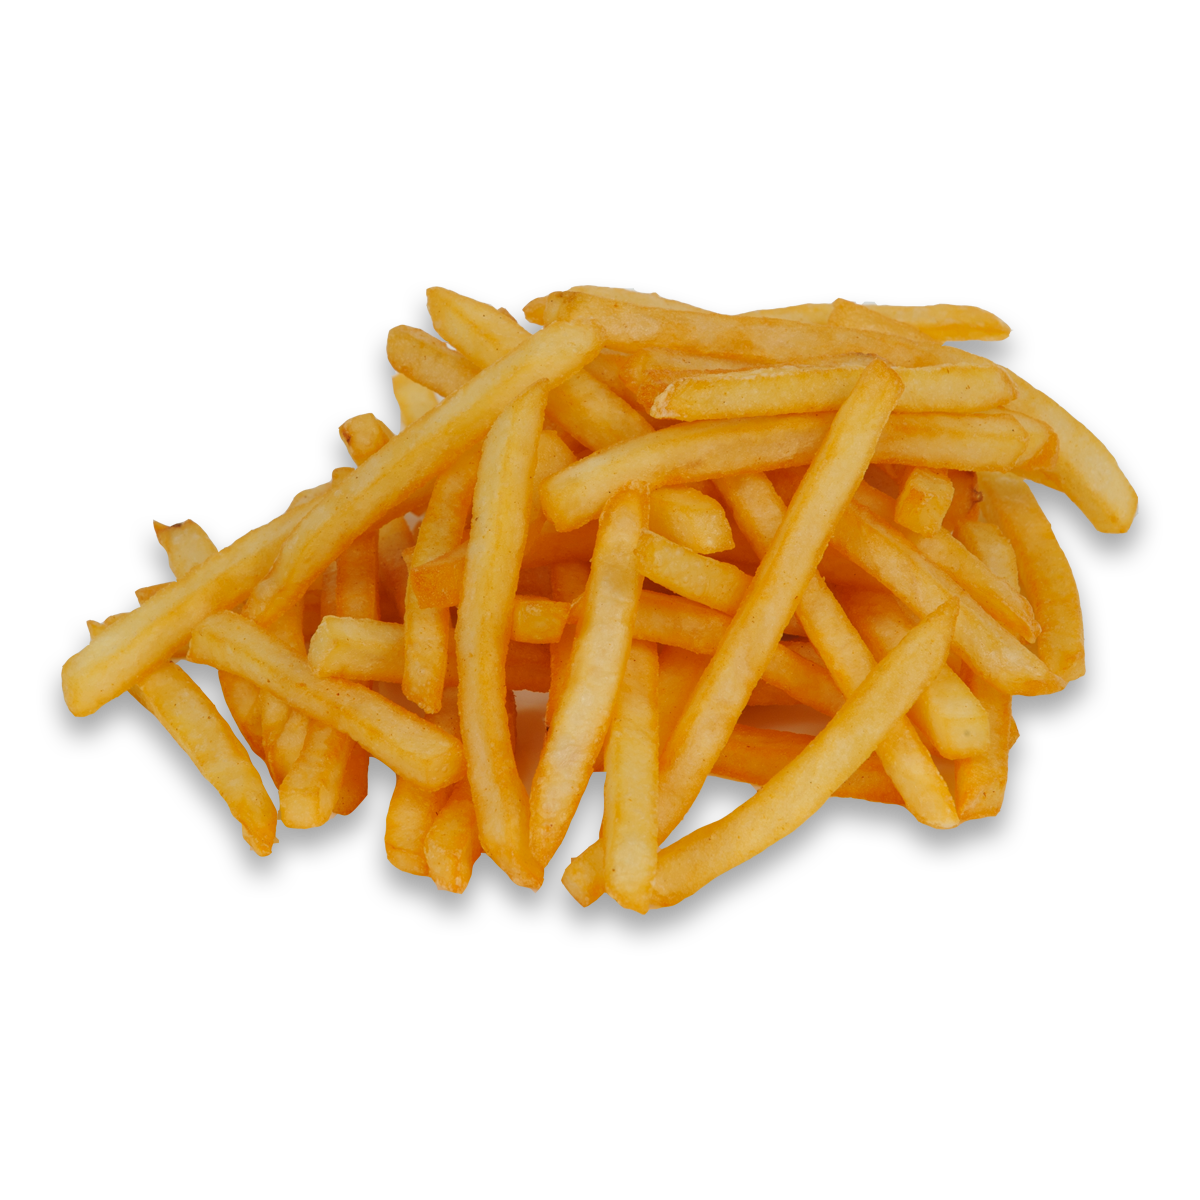 Fries Png Image Fries French Fries Food